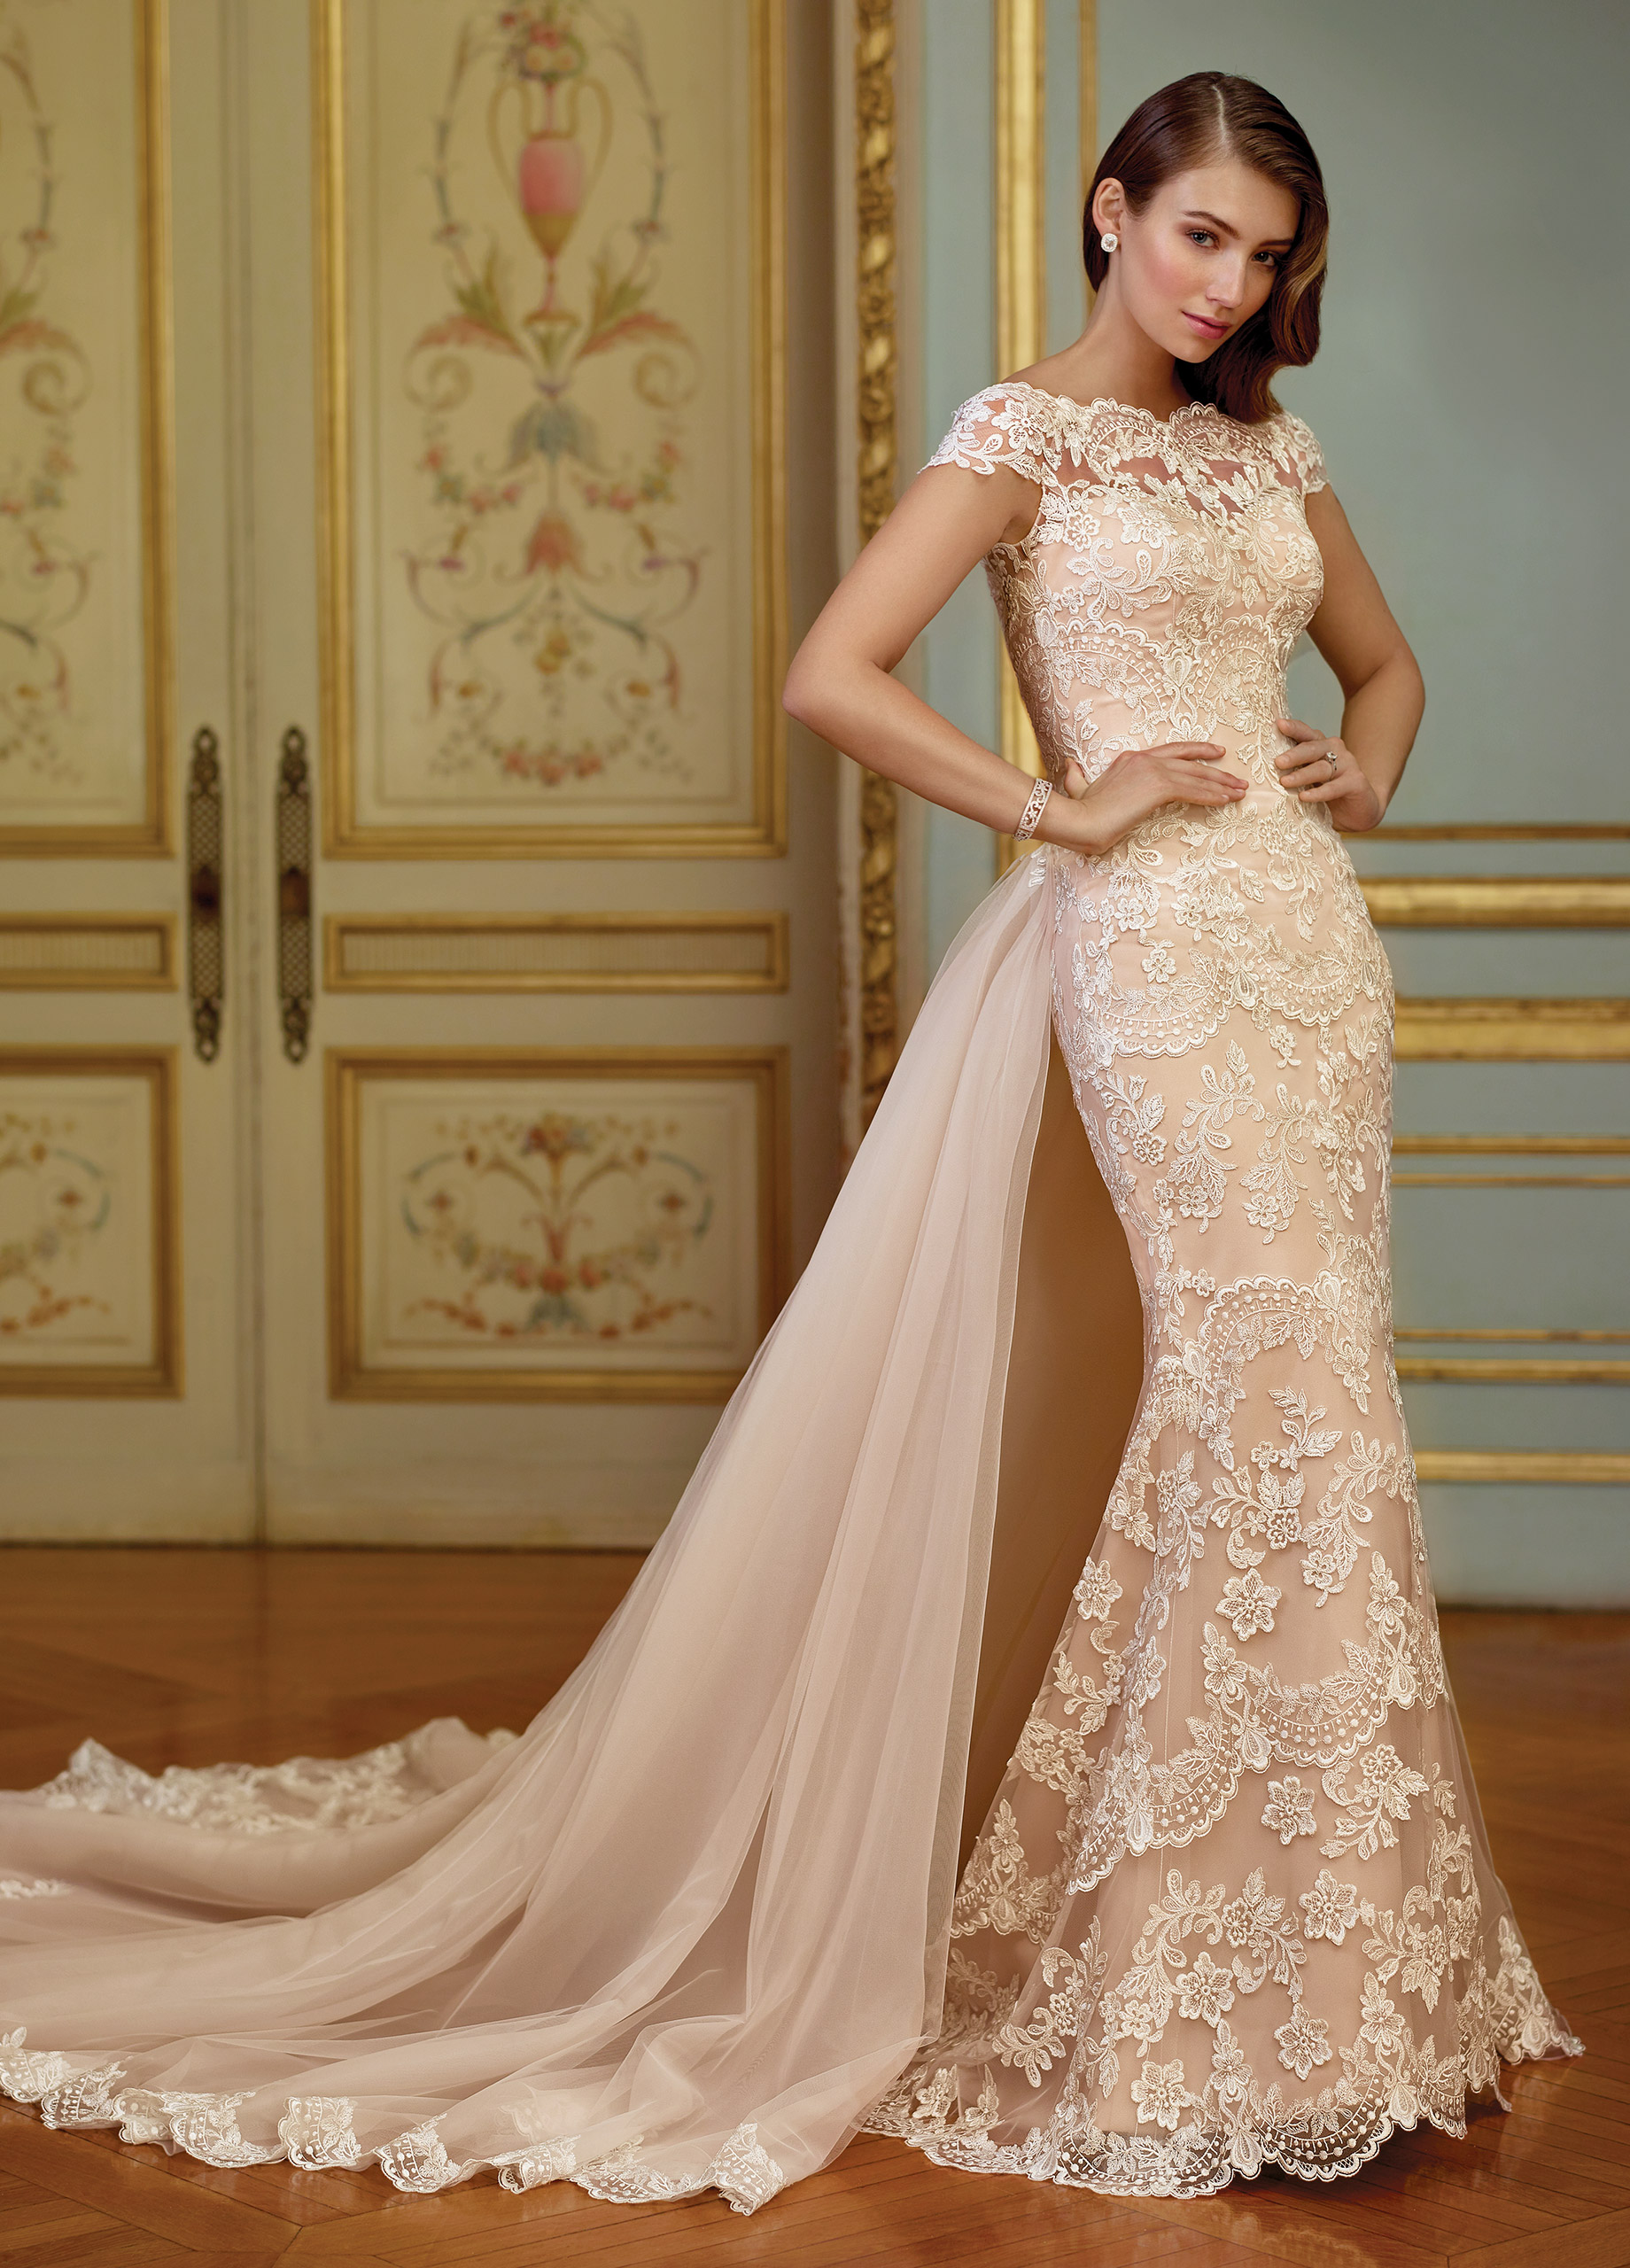 22395bf03d3 Embroidered Schiffli lace appliqué on tulle over organza fit and flare gown  with illusion scalloped lace cap sleeves